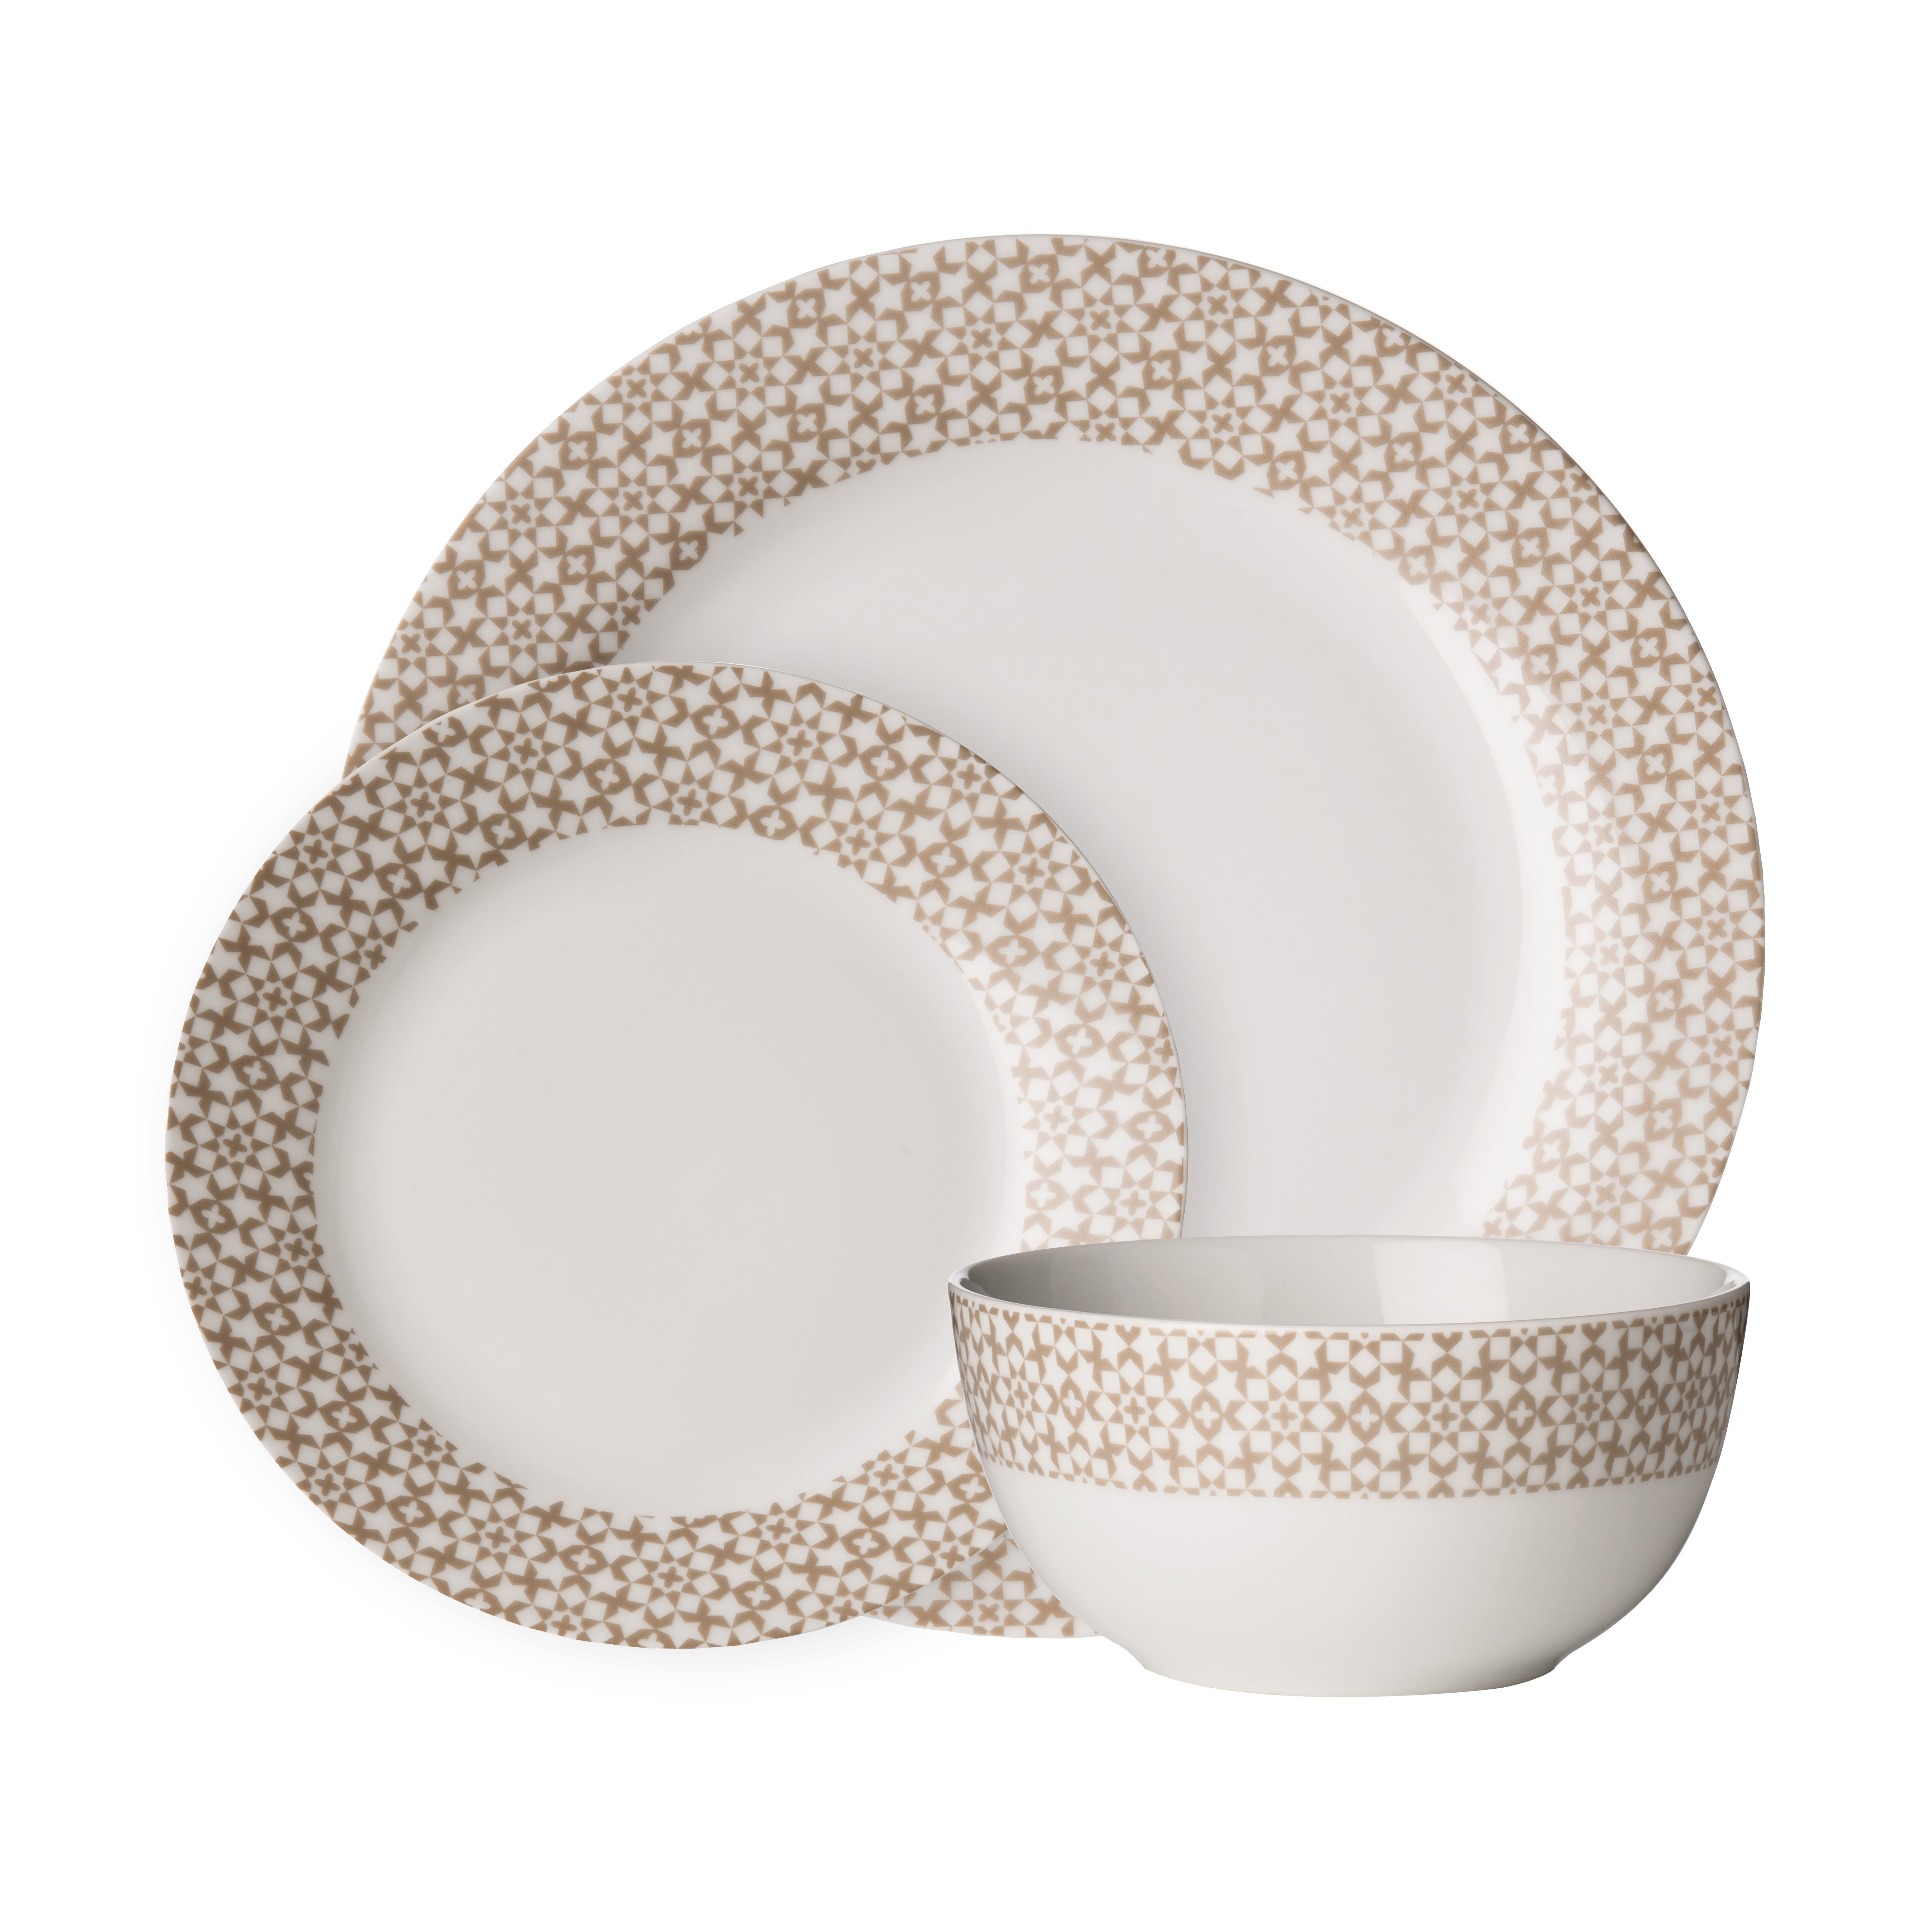 Avie 12Pc Casablanca Dinner Set (Mob)